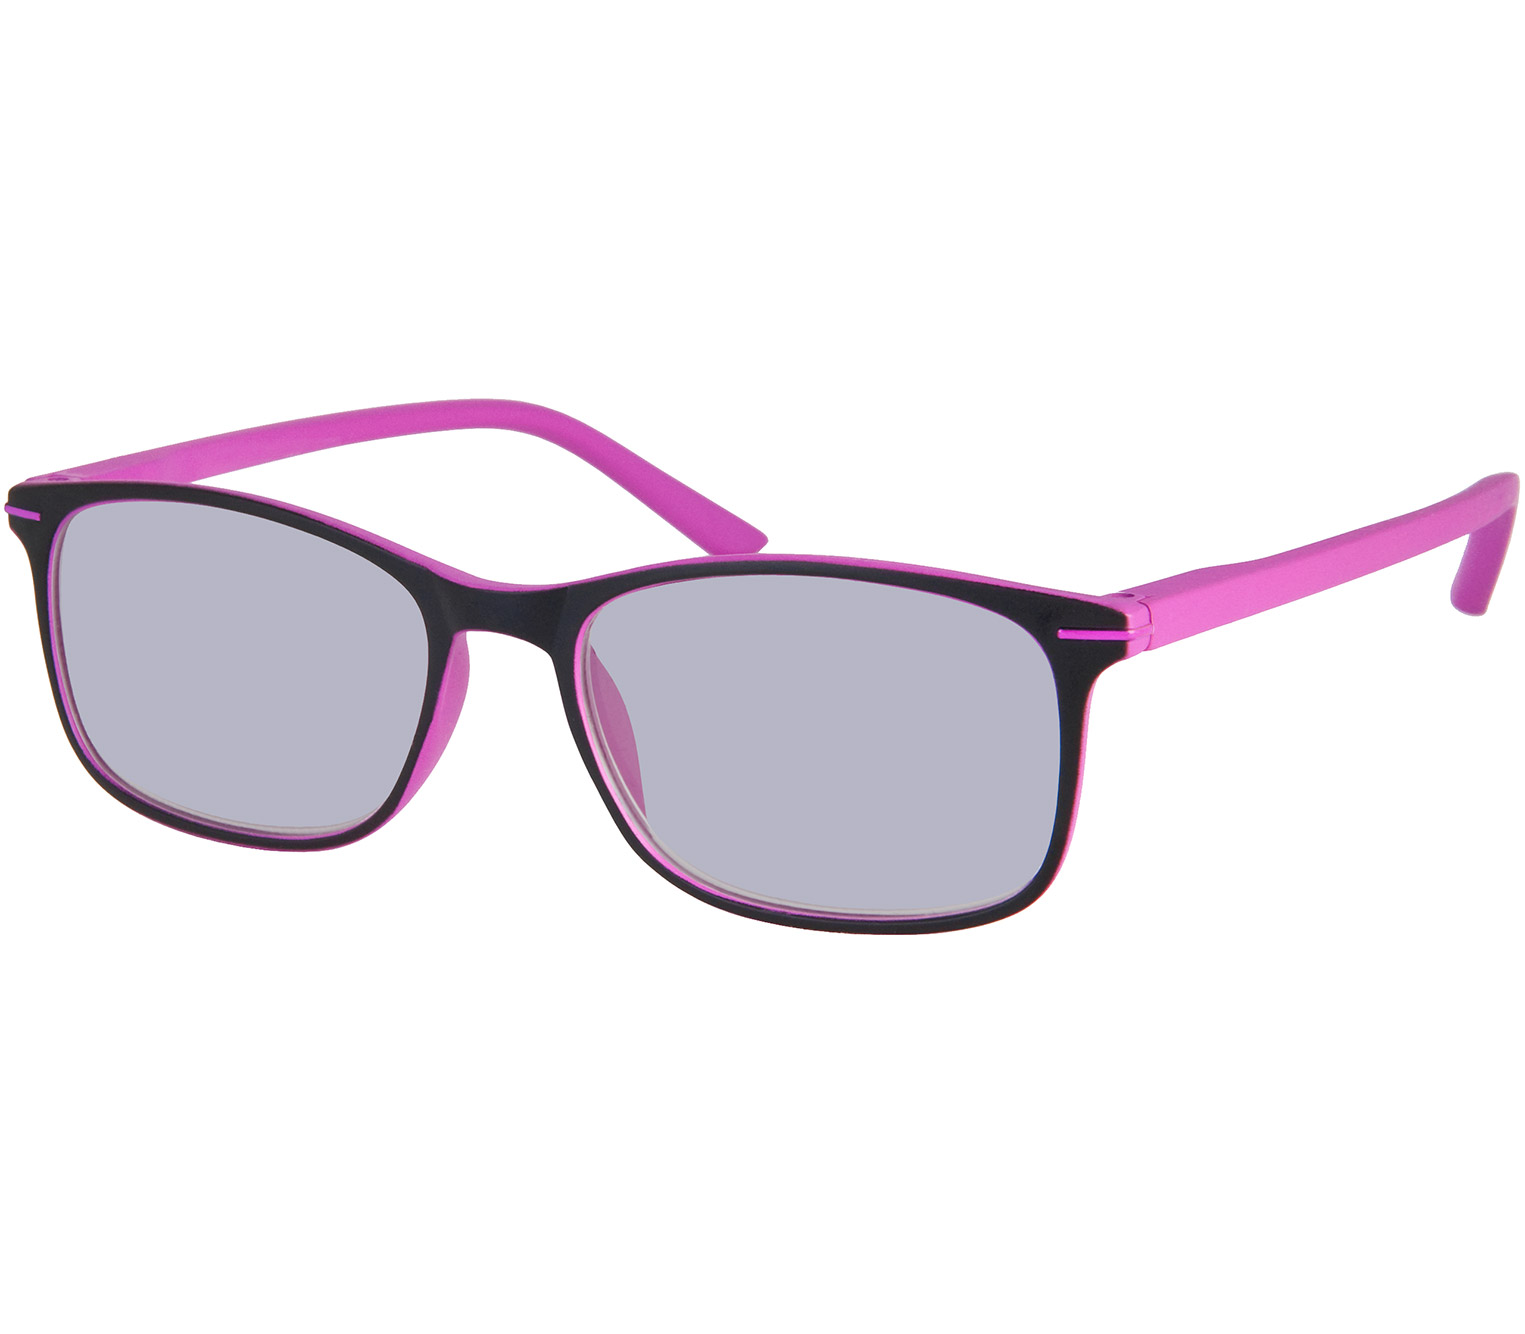 Main Image (Angle) - Mirage (Pink) Classic Sun Readers